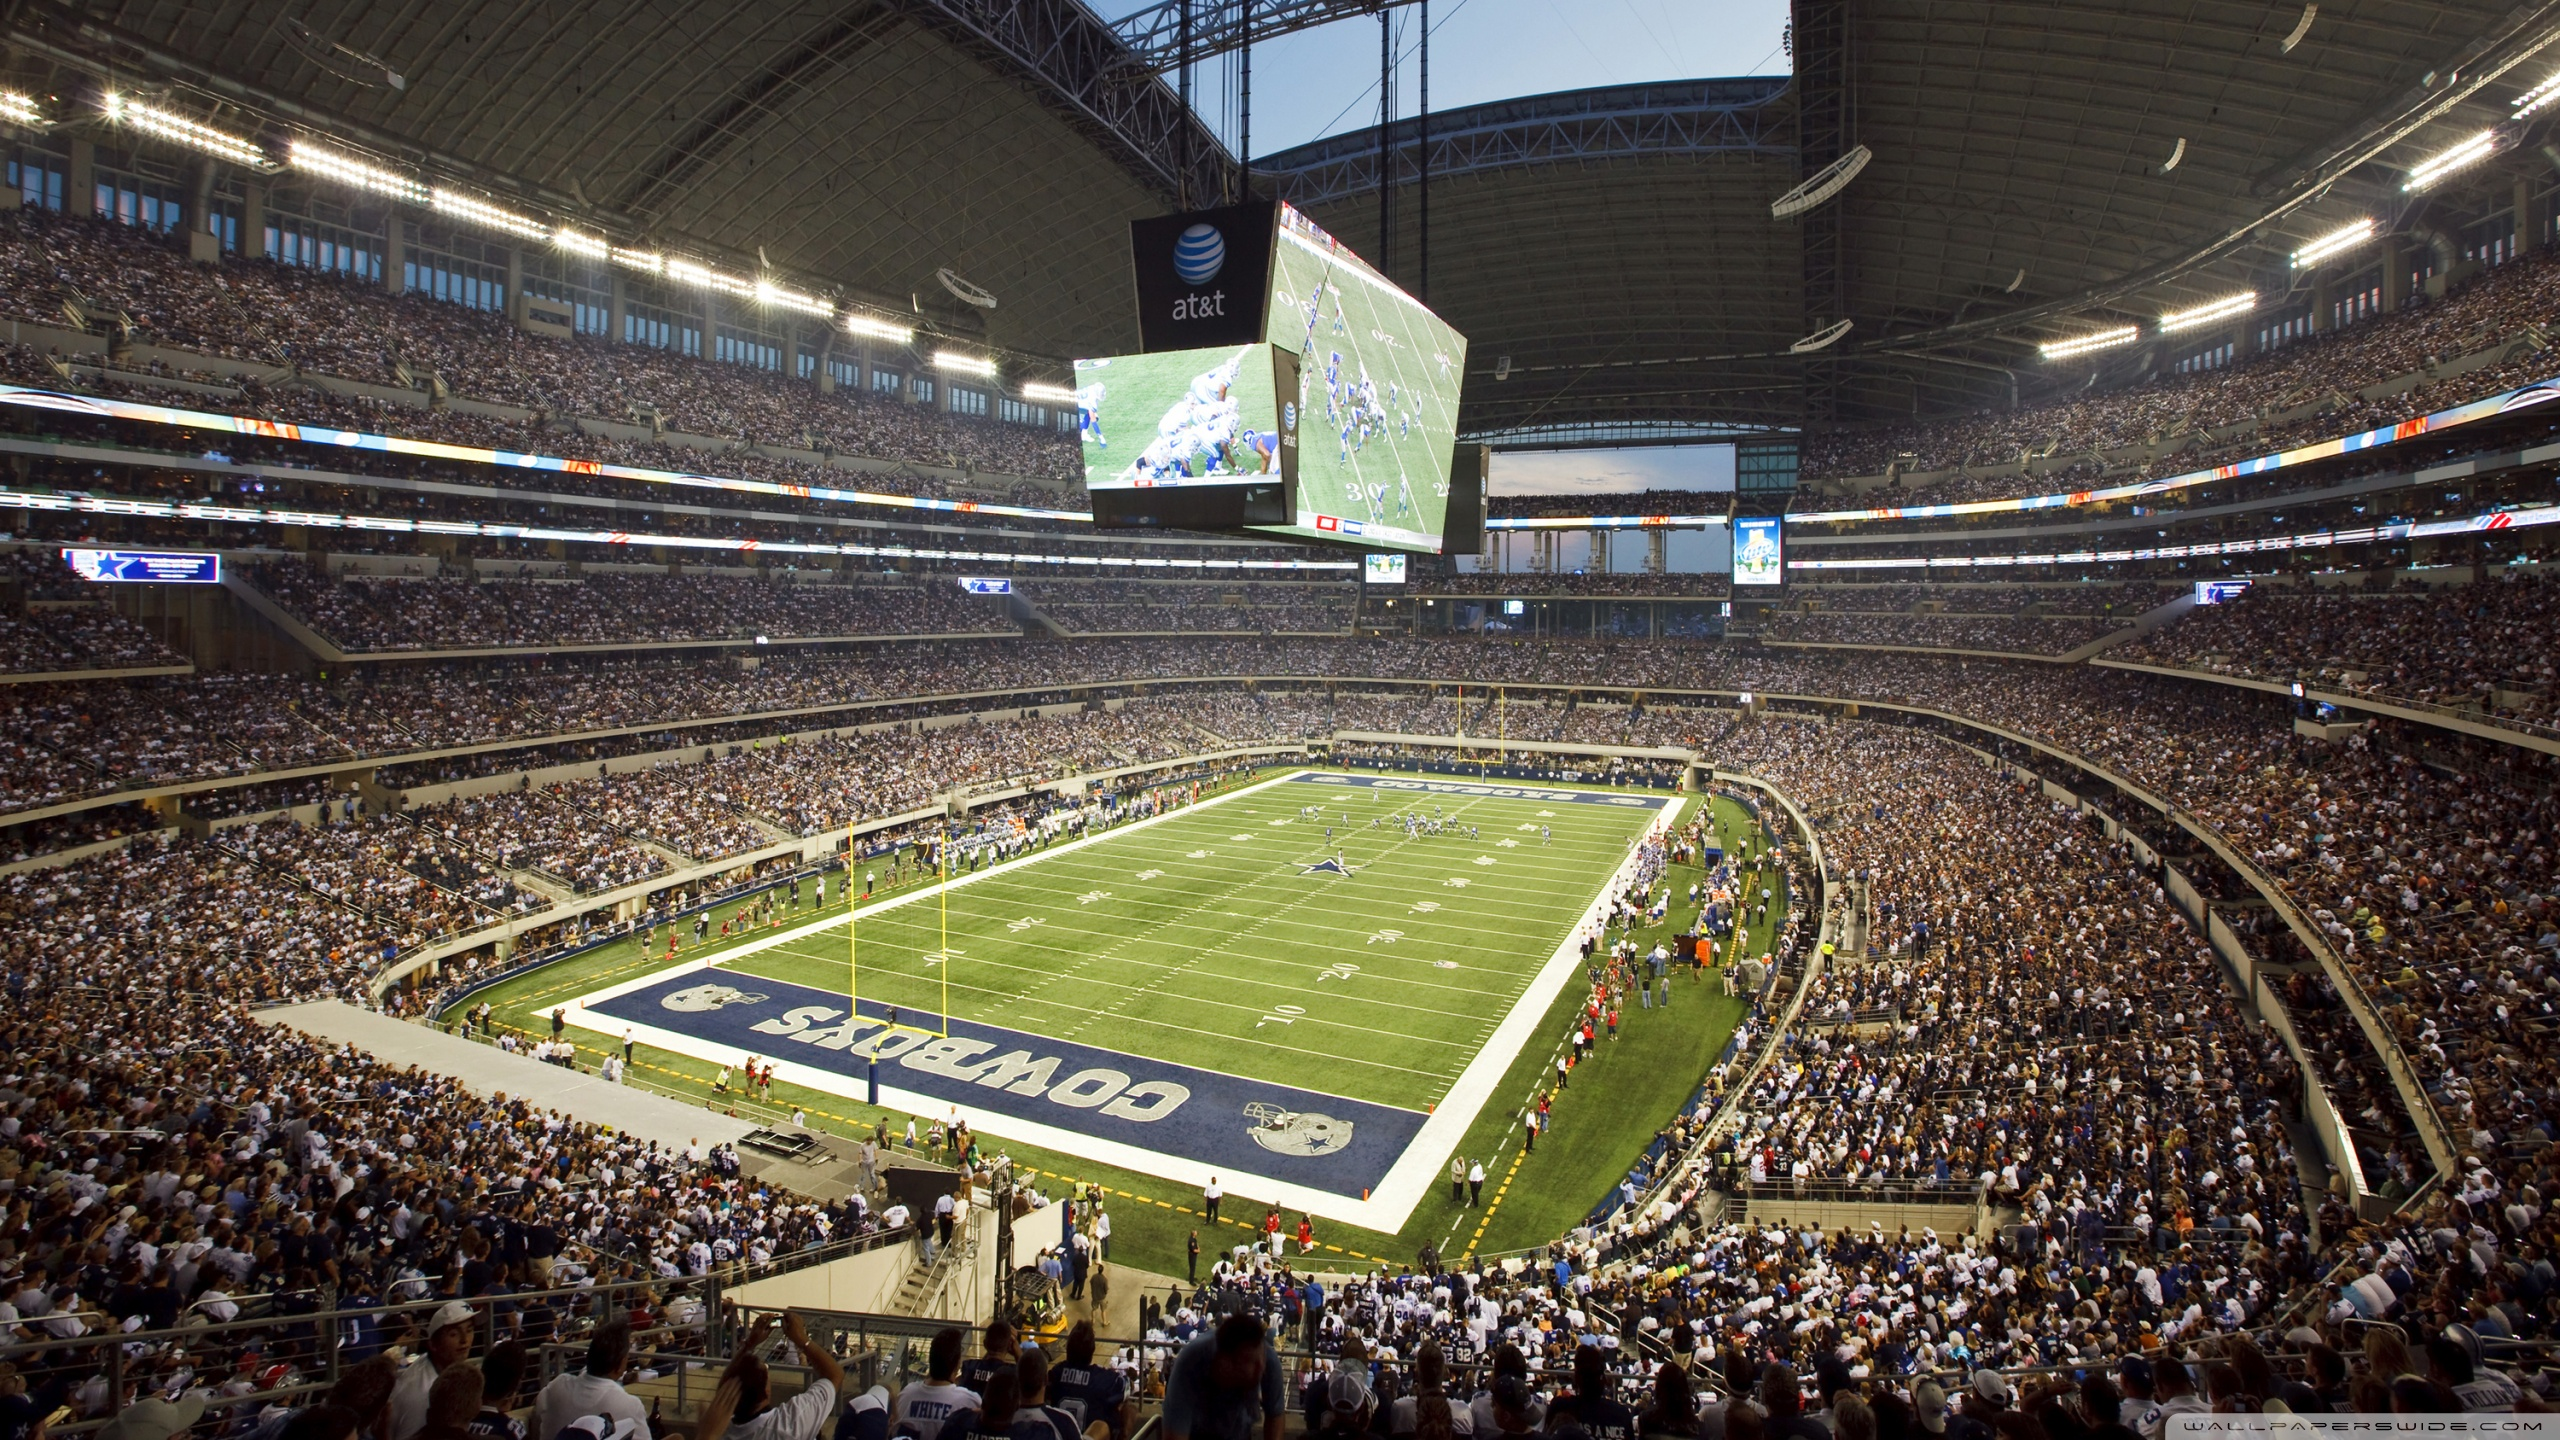 dallas_cowboys_stadium-wallpaper-2560x1440.jpg